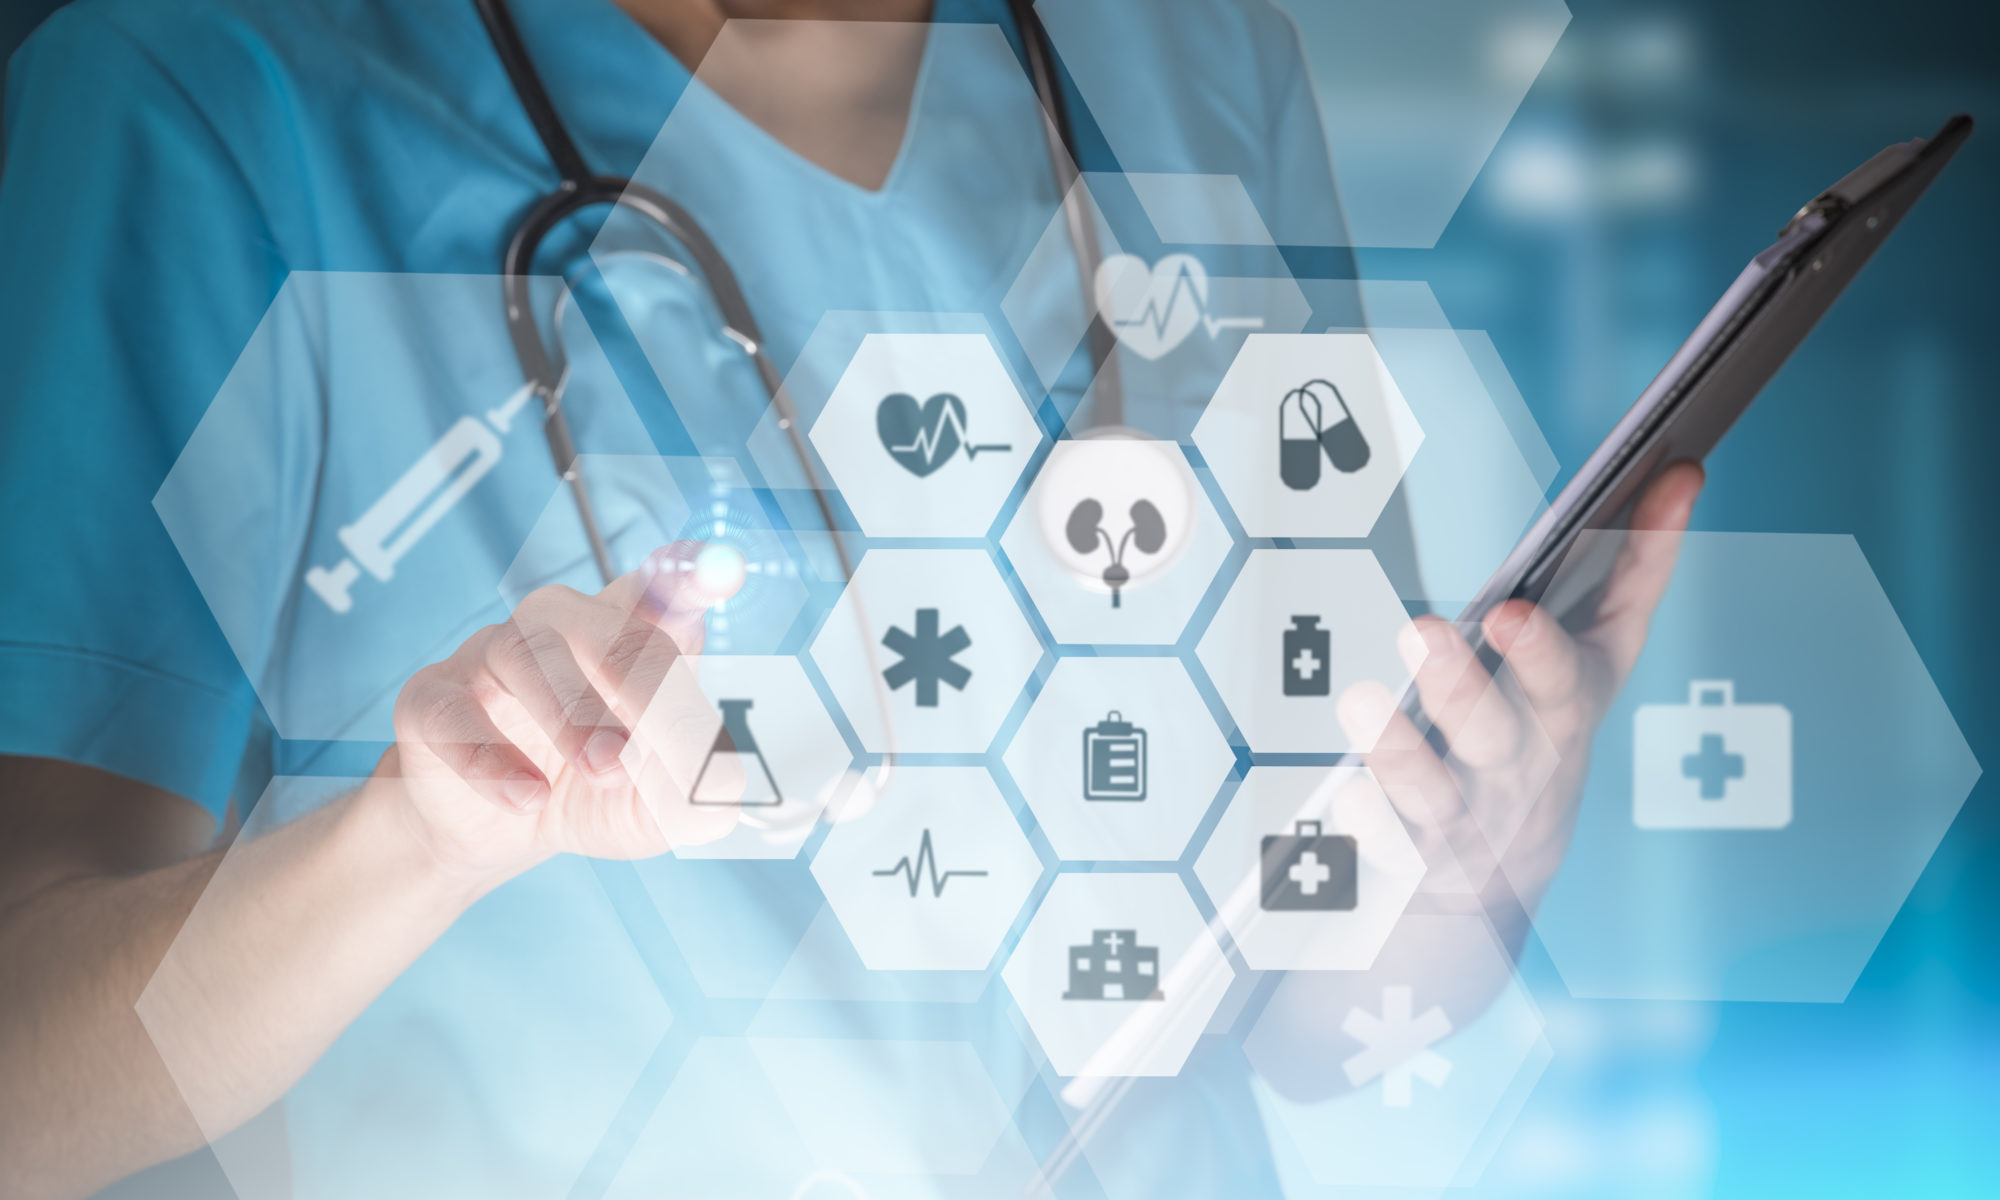 Healthcare at Our Fingertips: Enabling the Digital Health Environment that Canadians Deserve - PPF